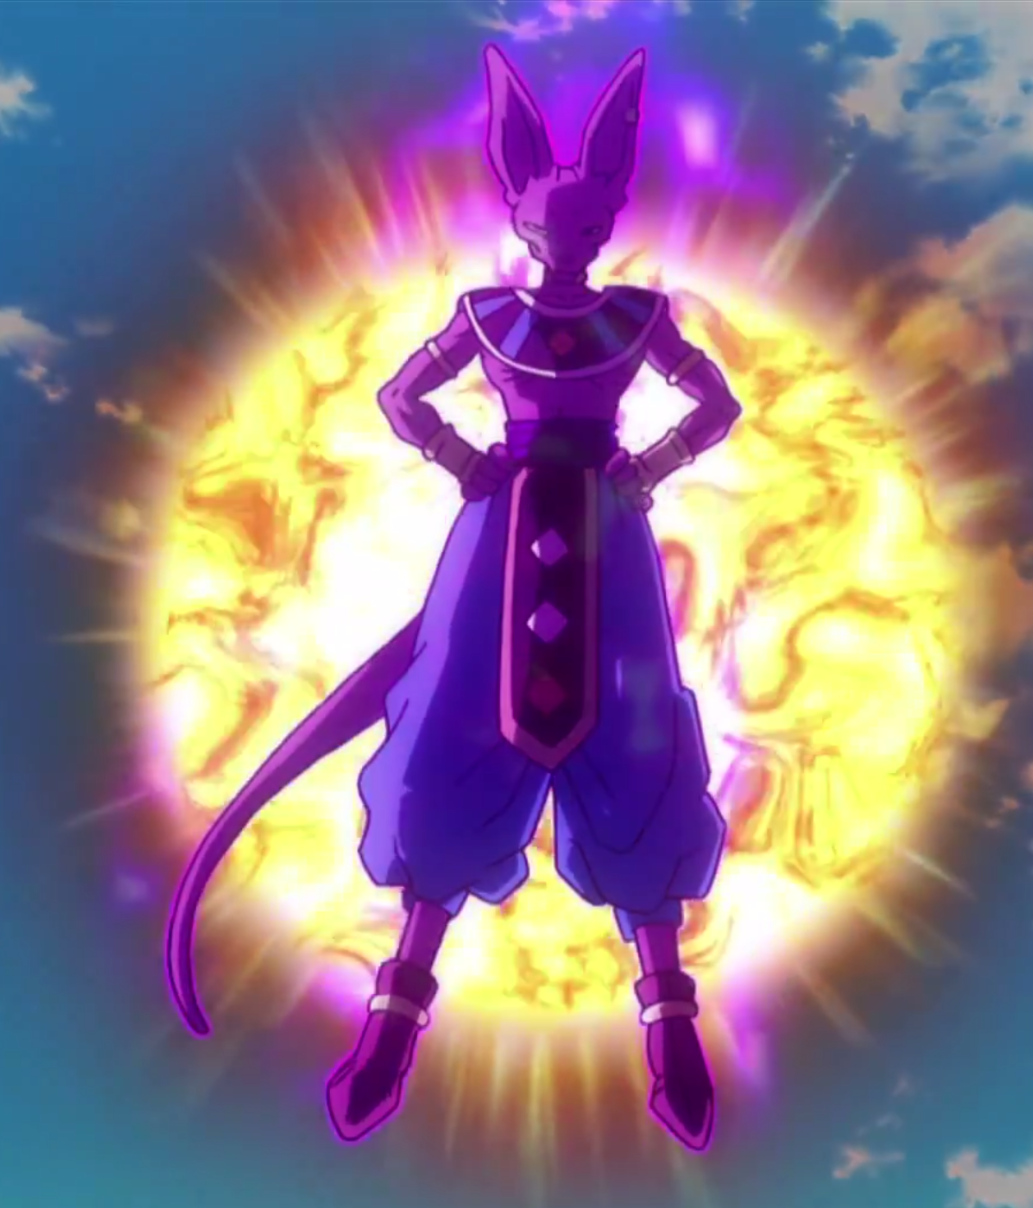 http://vignette3.wikia.nocookie.net/dragonball/images/8/8d/Beerus_POI.png/revision/latest?cb=20140805184017